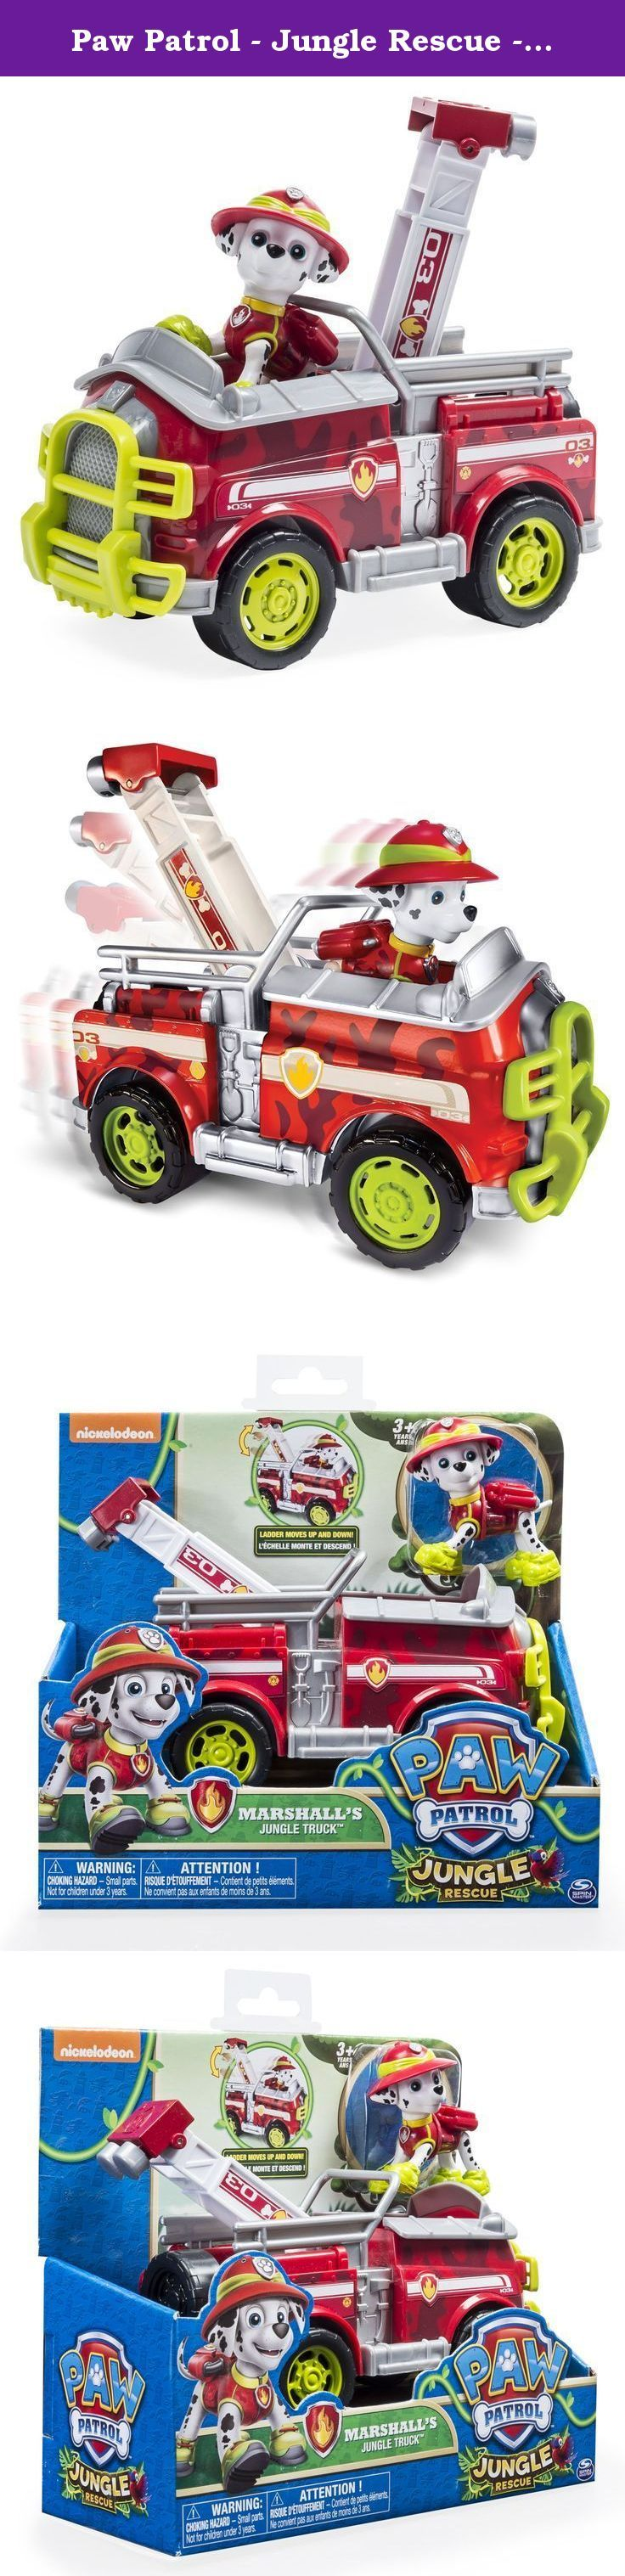 Paw Patrol - Jungle Rescue - Marshall's Jungle Truck. No job is too big and no pup is too small! Now you can re-enact new jungle-themed rescue missions with Marshall and his jungle truck! Race to the ruff-ruff rescue with Marshall and his real working ladder! Together, your child's imagination will be lit up with pup inspired rescue missions full of friendship, teamwork and bravery. With Marshall and his Jungle Truck you can save the day! Recreate your favorite Paw Patrol adventures with…